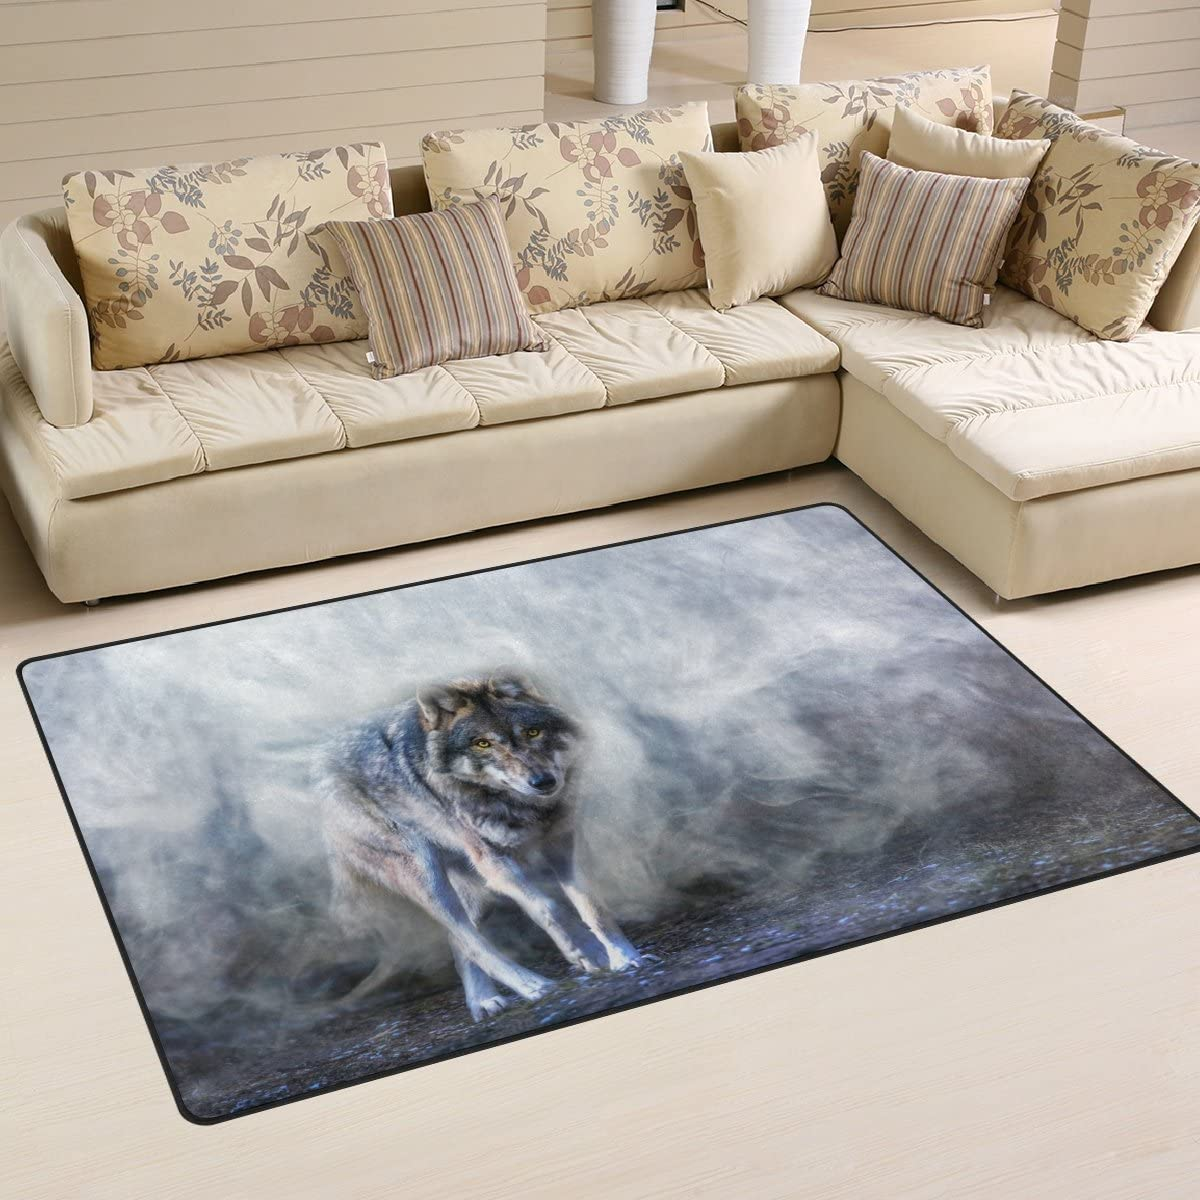 Yochoice Non-slip Area Rugs Home Decor, Stylish Running Wolf in the Mist Floor Mat Living Room Bedroom Carpets Doormats 60 x 39 inches